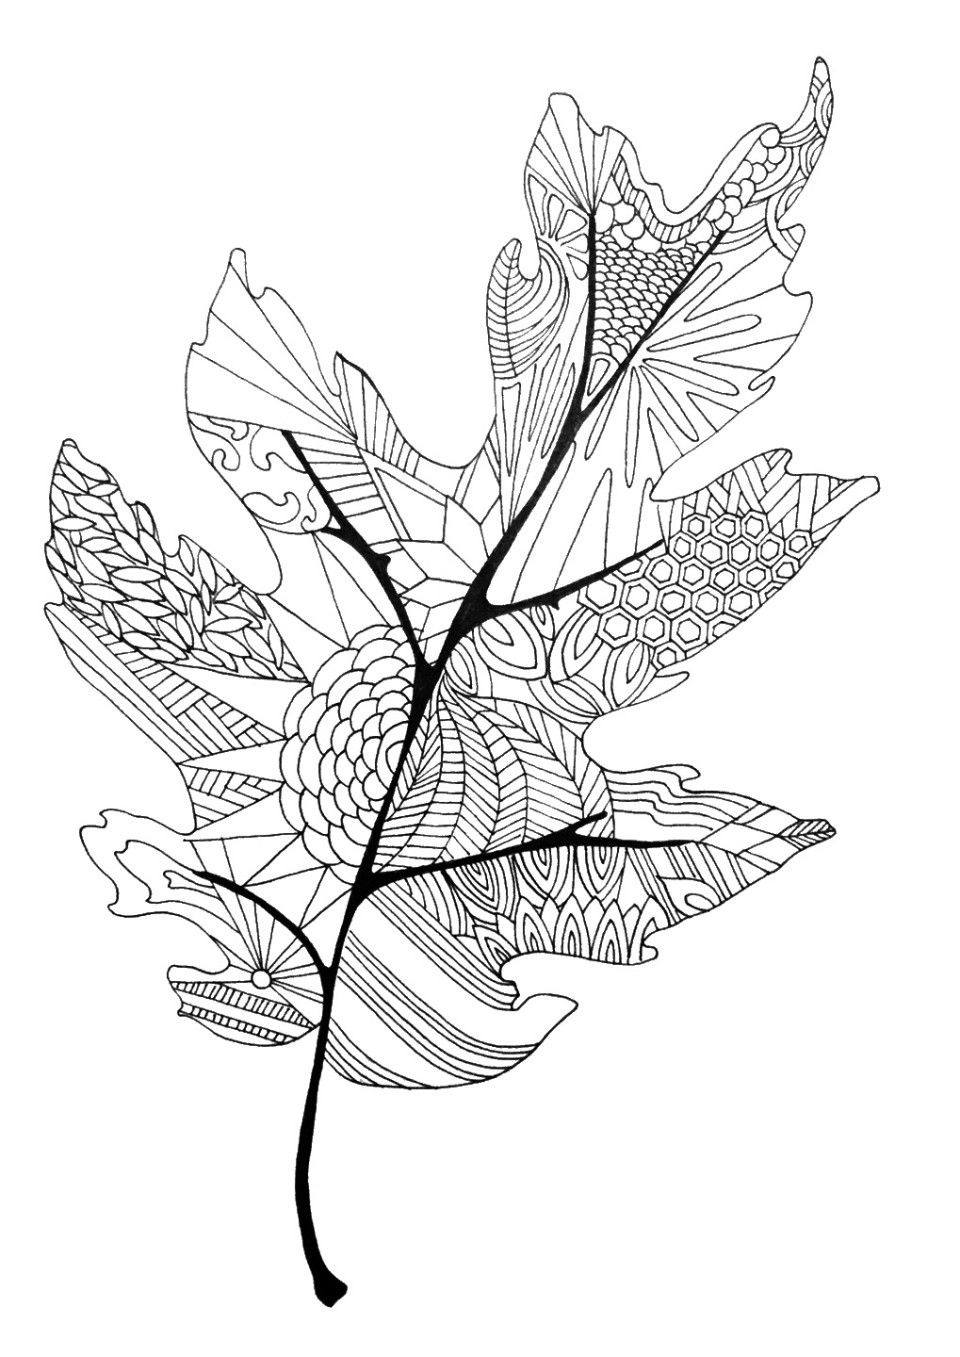 Coloring In The Lines | Printable What Nots | Fall Leaves